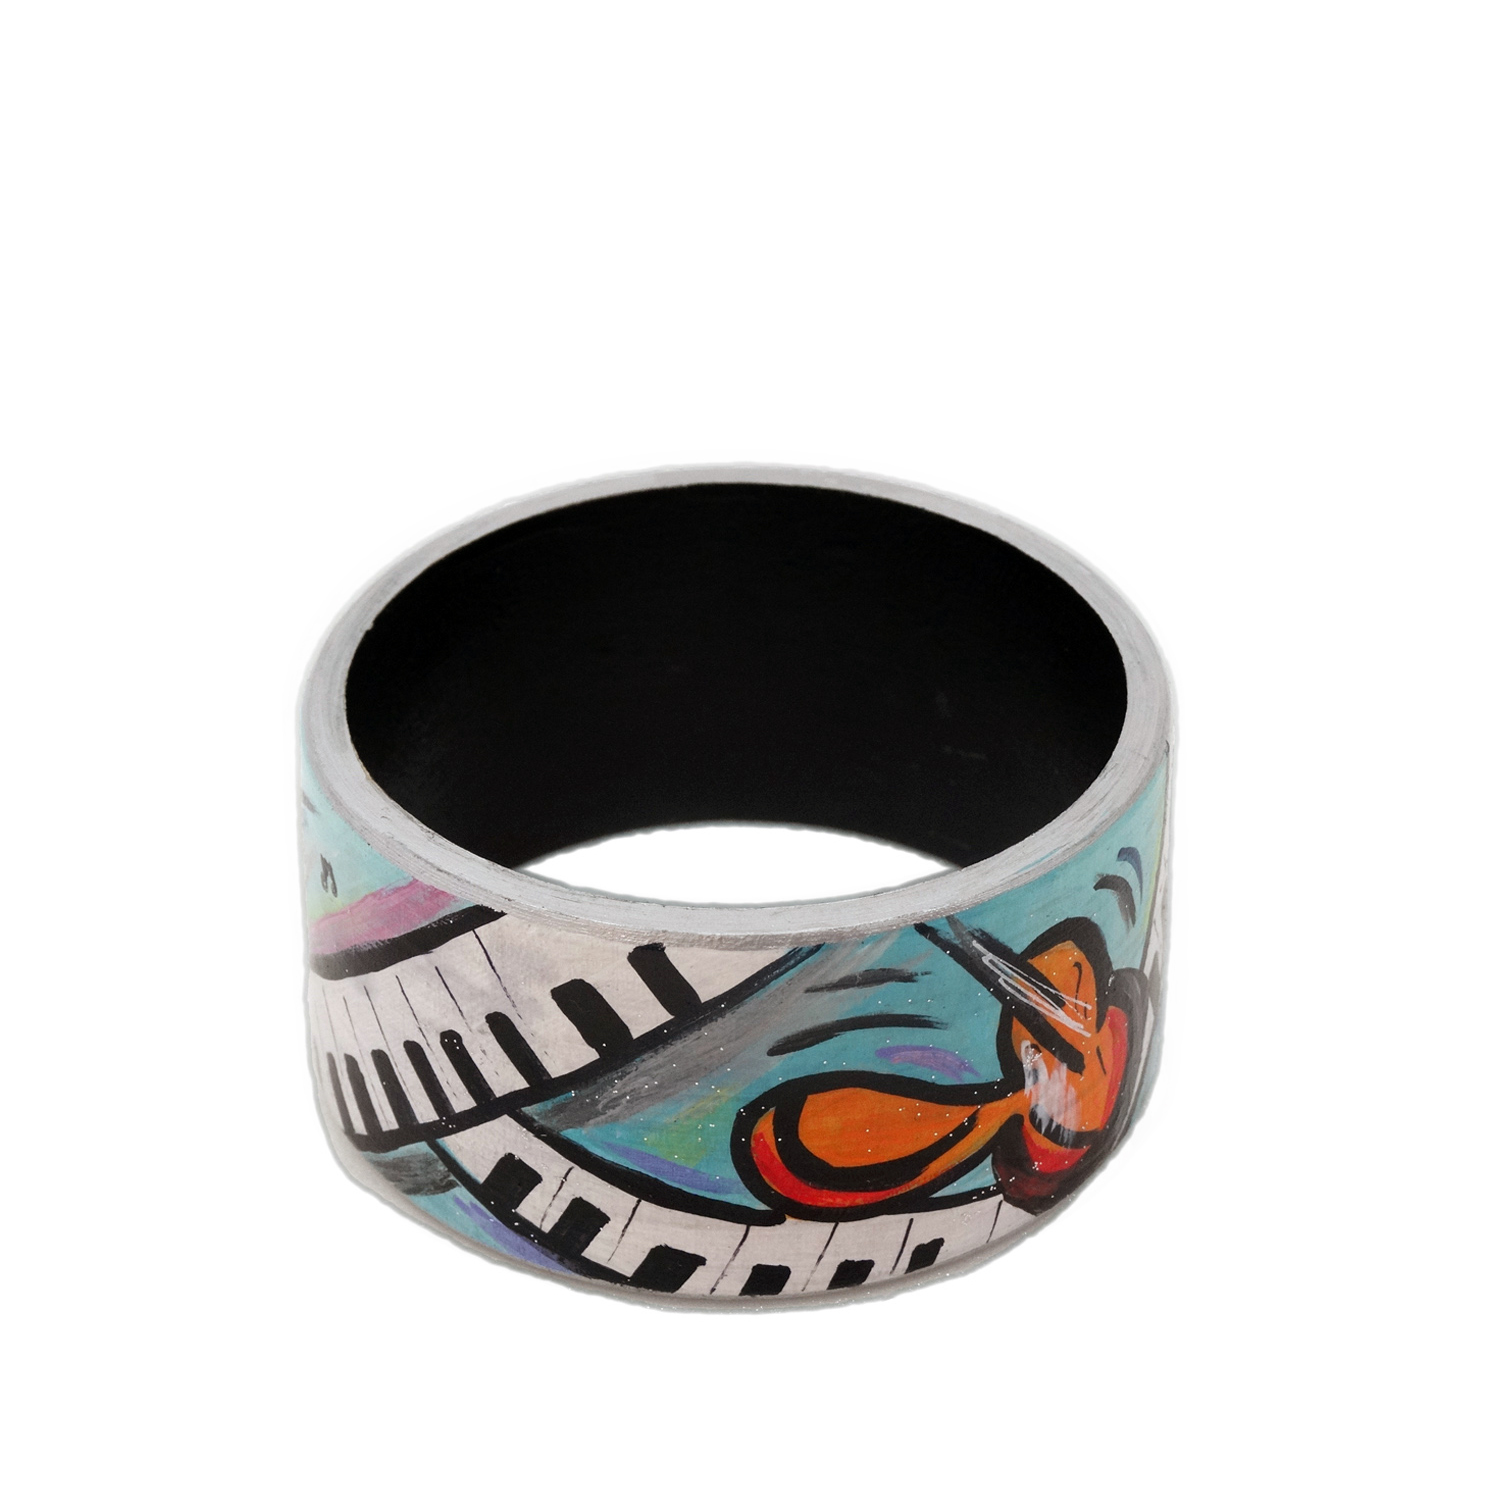 Bracciale dipinto a mano – Music is my world